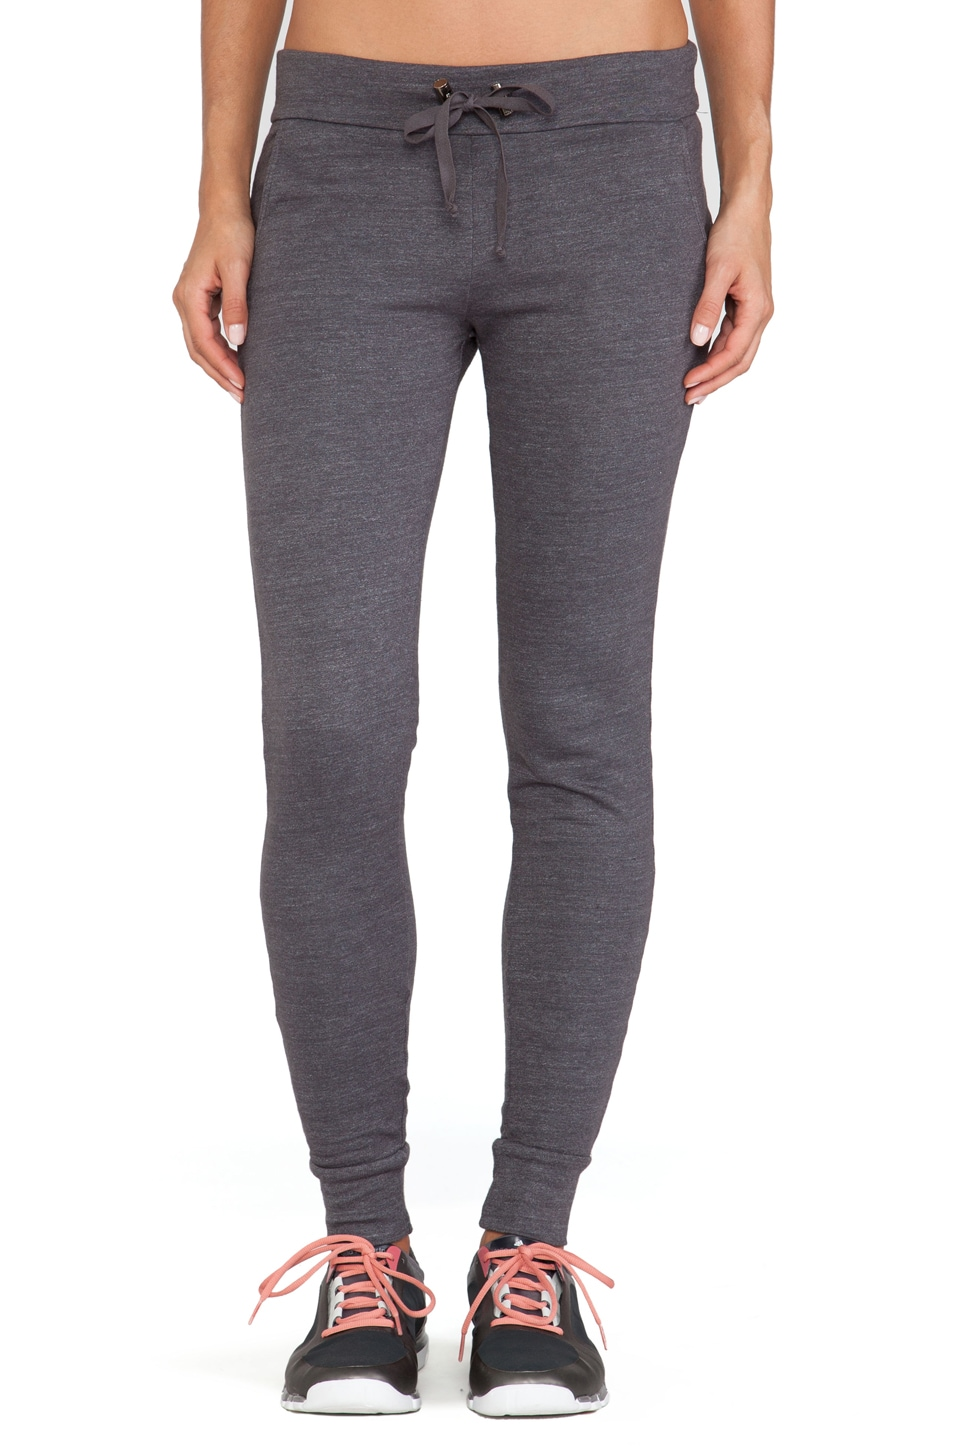 SOLOW So Low Slouchy Pant in Carbon